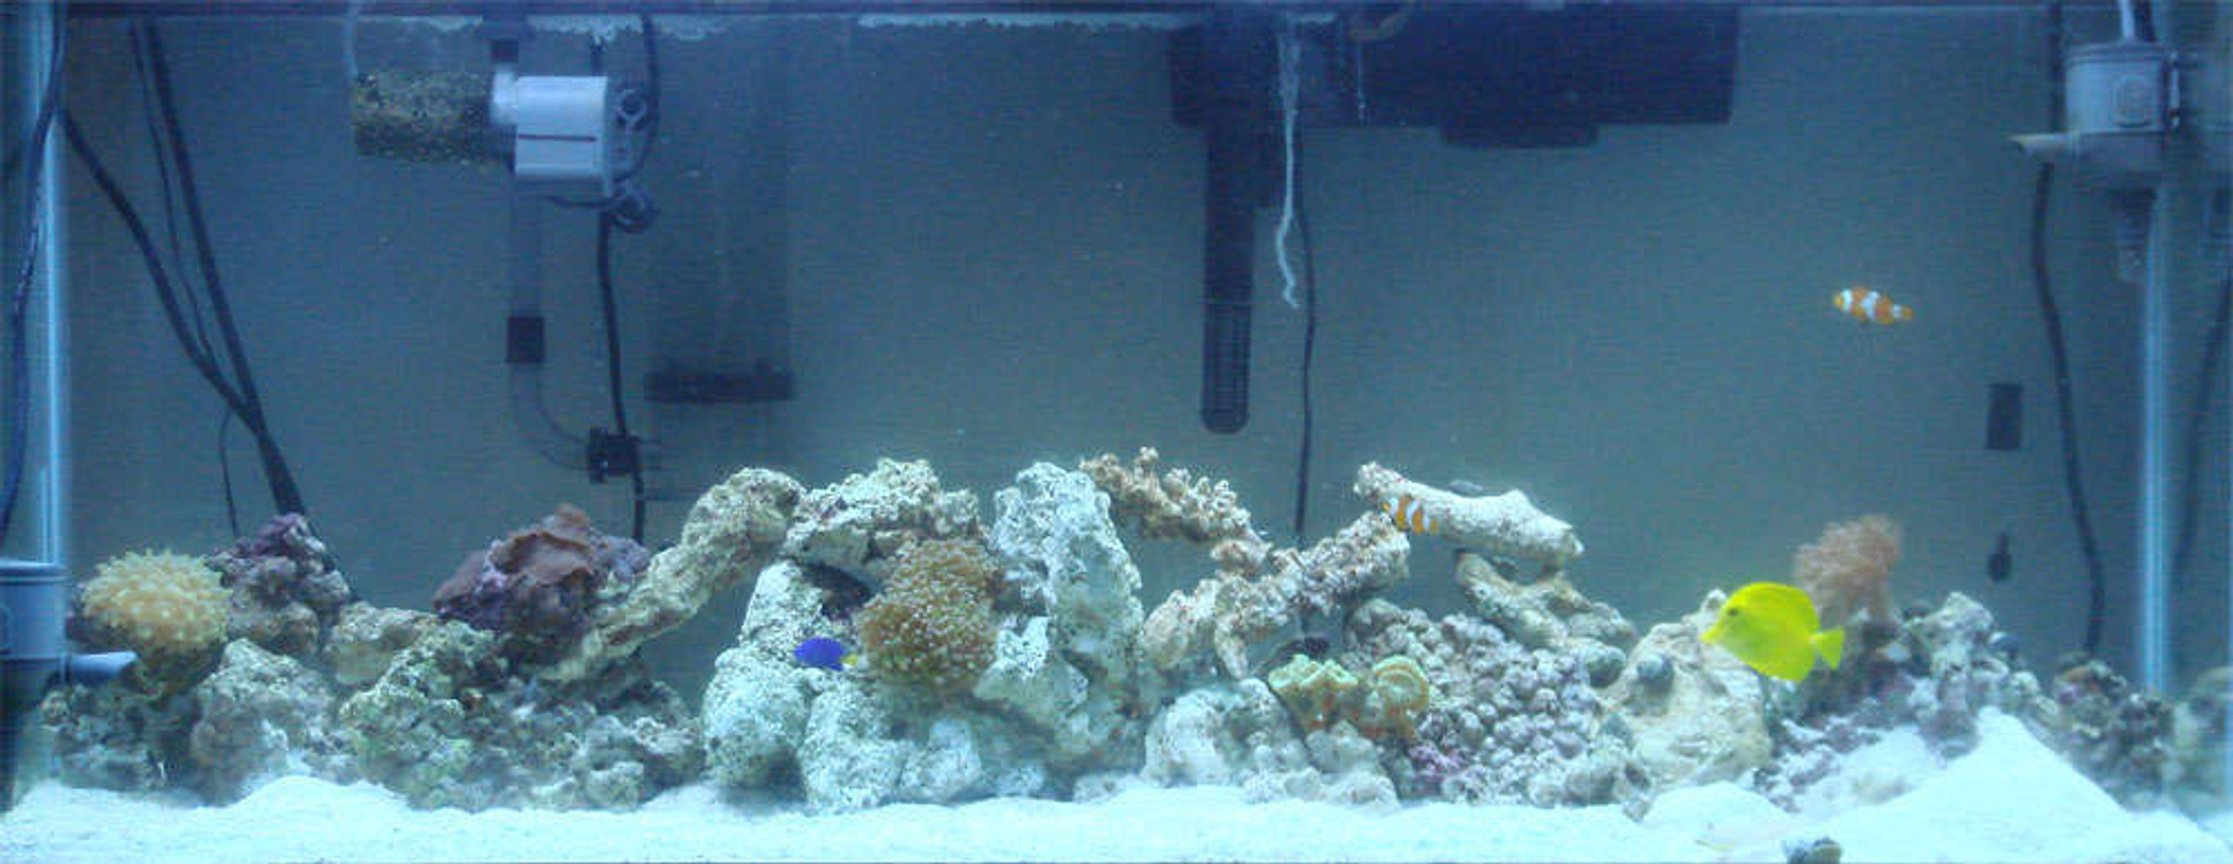 55 gallons reef tank (mostly live coral and fish) - My saltwater tank, soon to be reef tank.